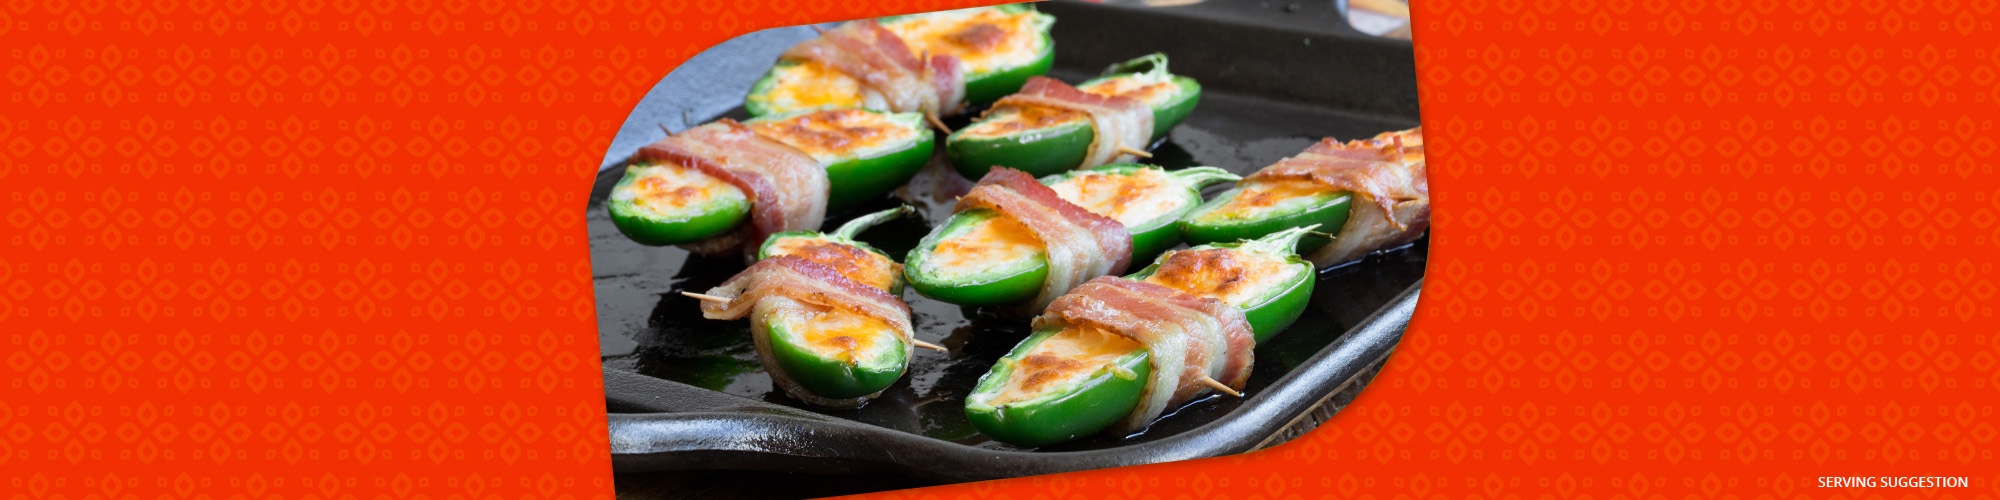 Salsas bacon wrapped jalapeno poppers